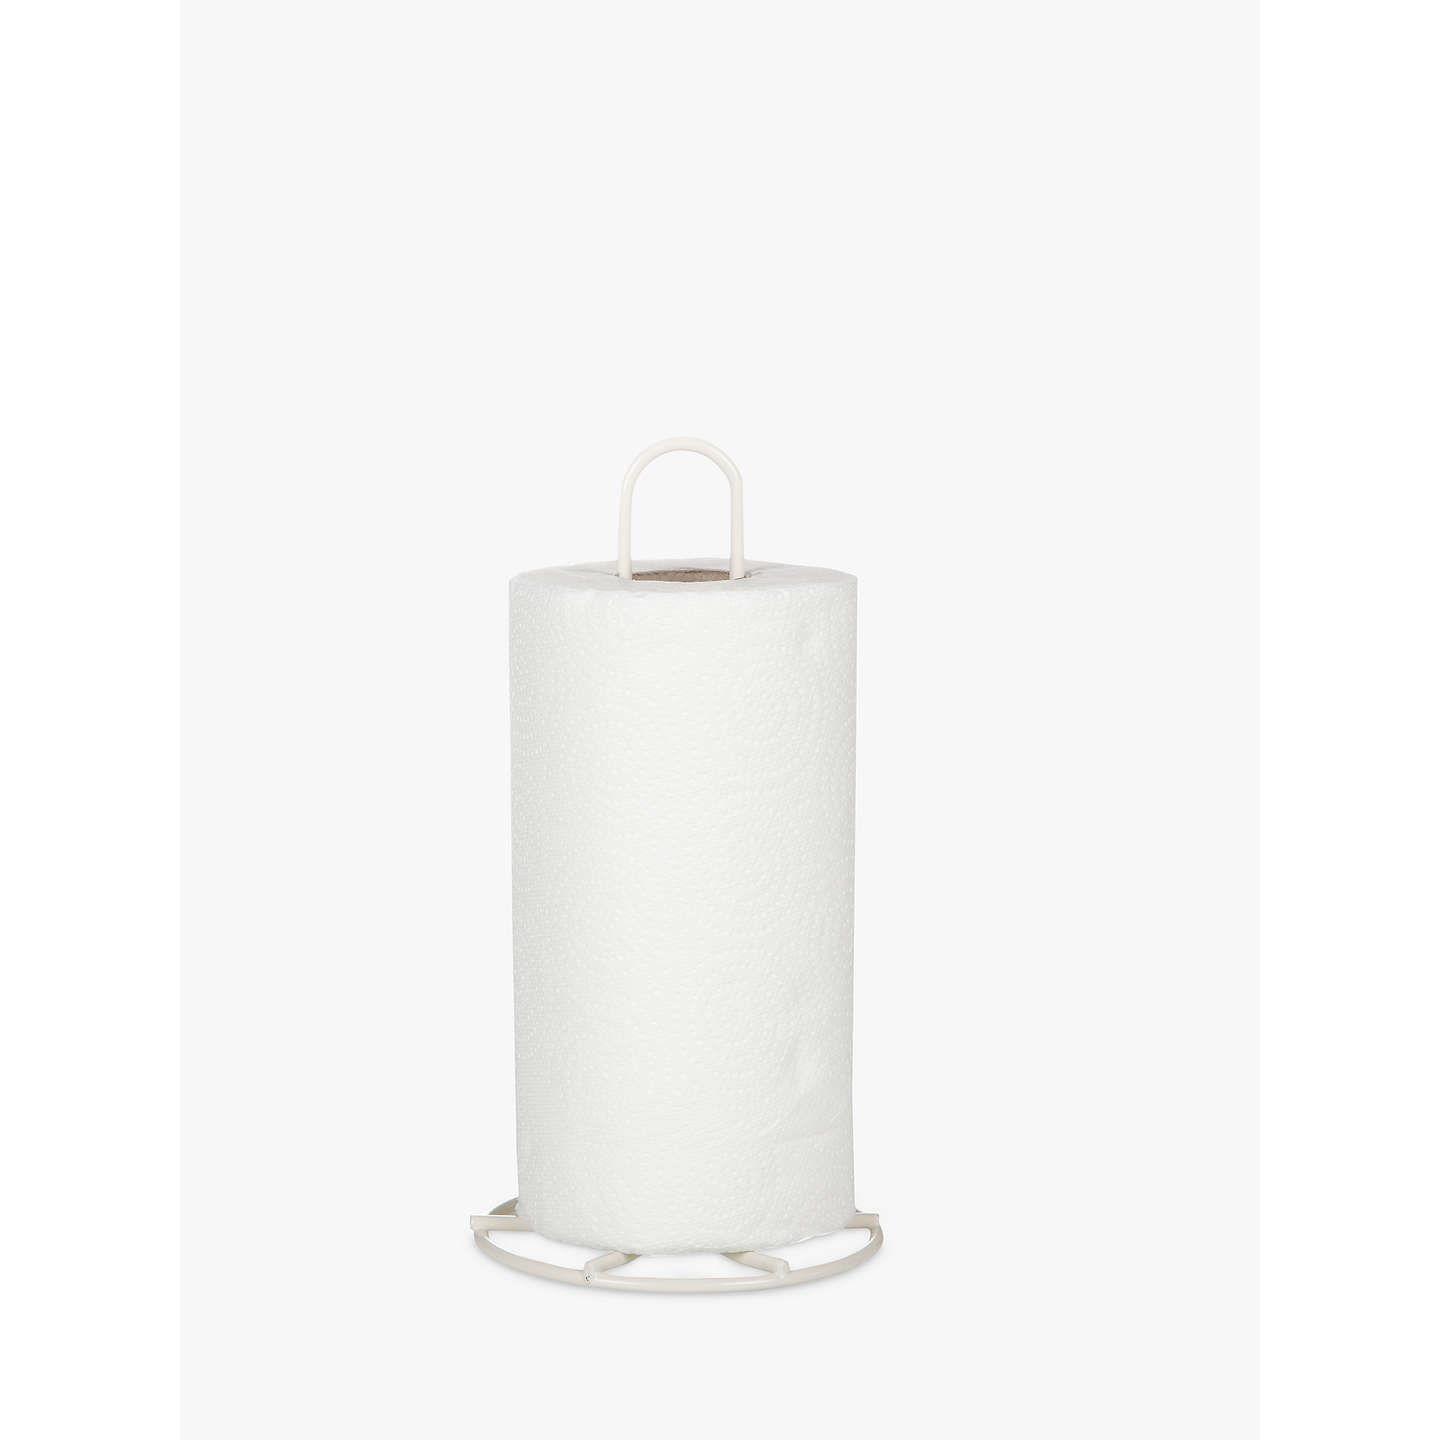 John Lewis Kitchen Roll Holder, Cream at John Lewis